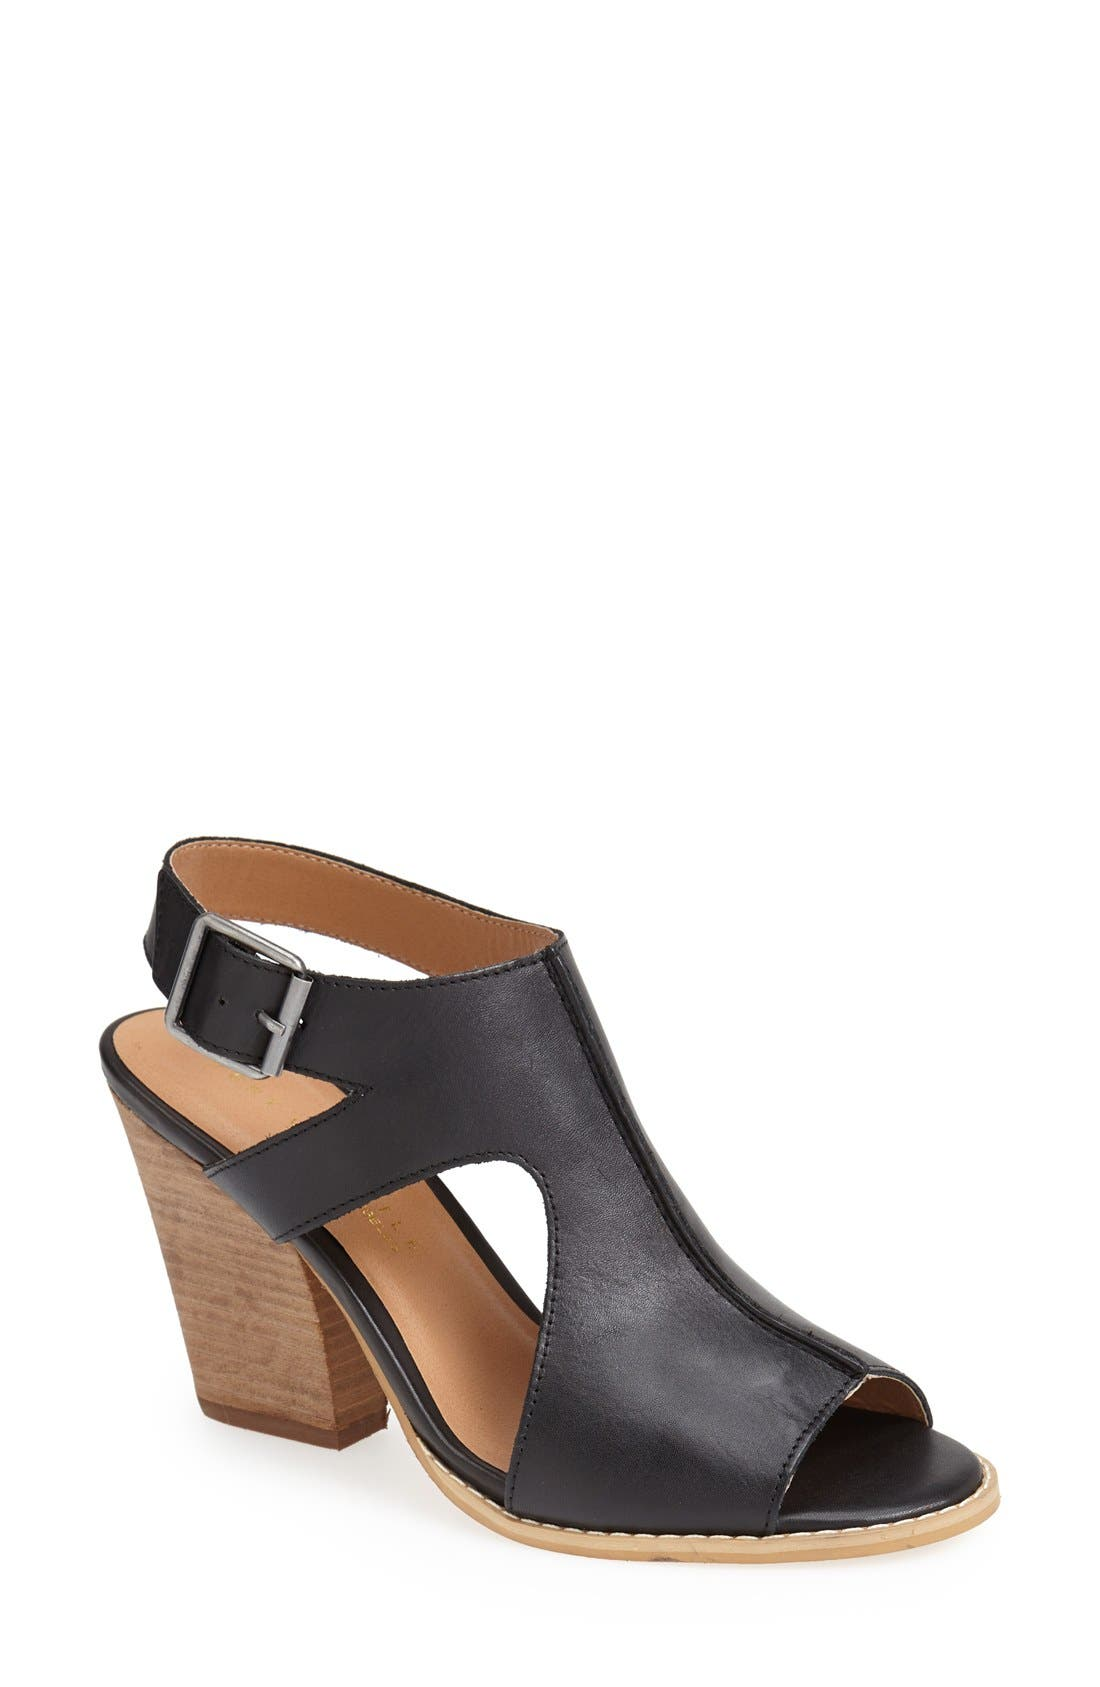 Alternate Image 1 Selected - Very Volatile 'Cagney' Sandal (Women)